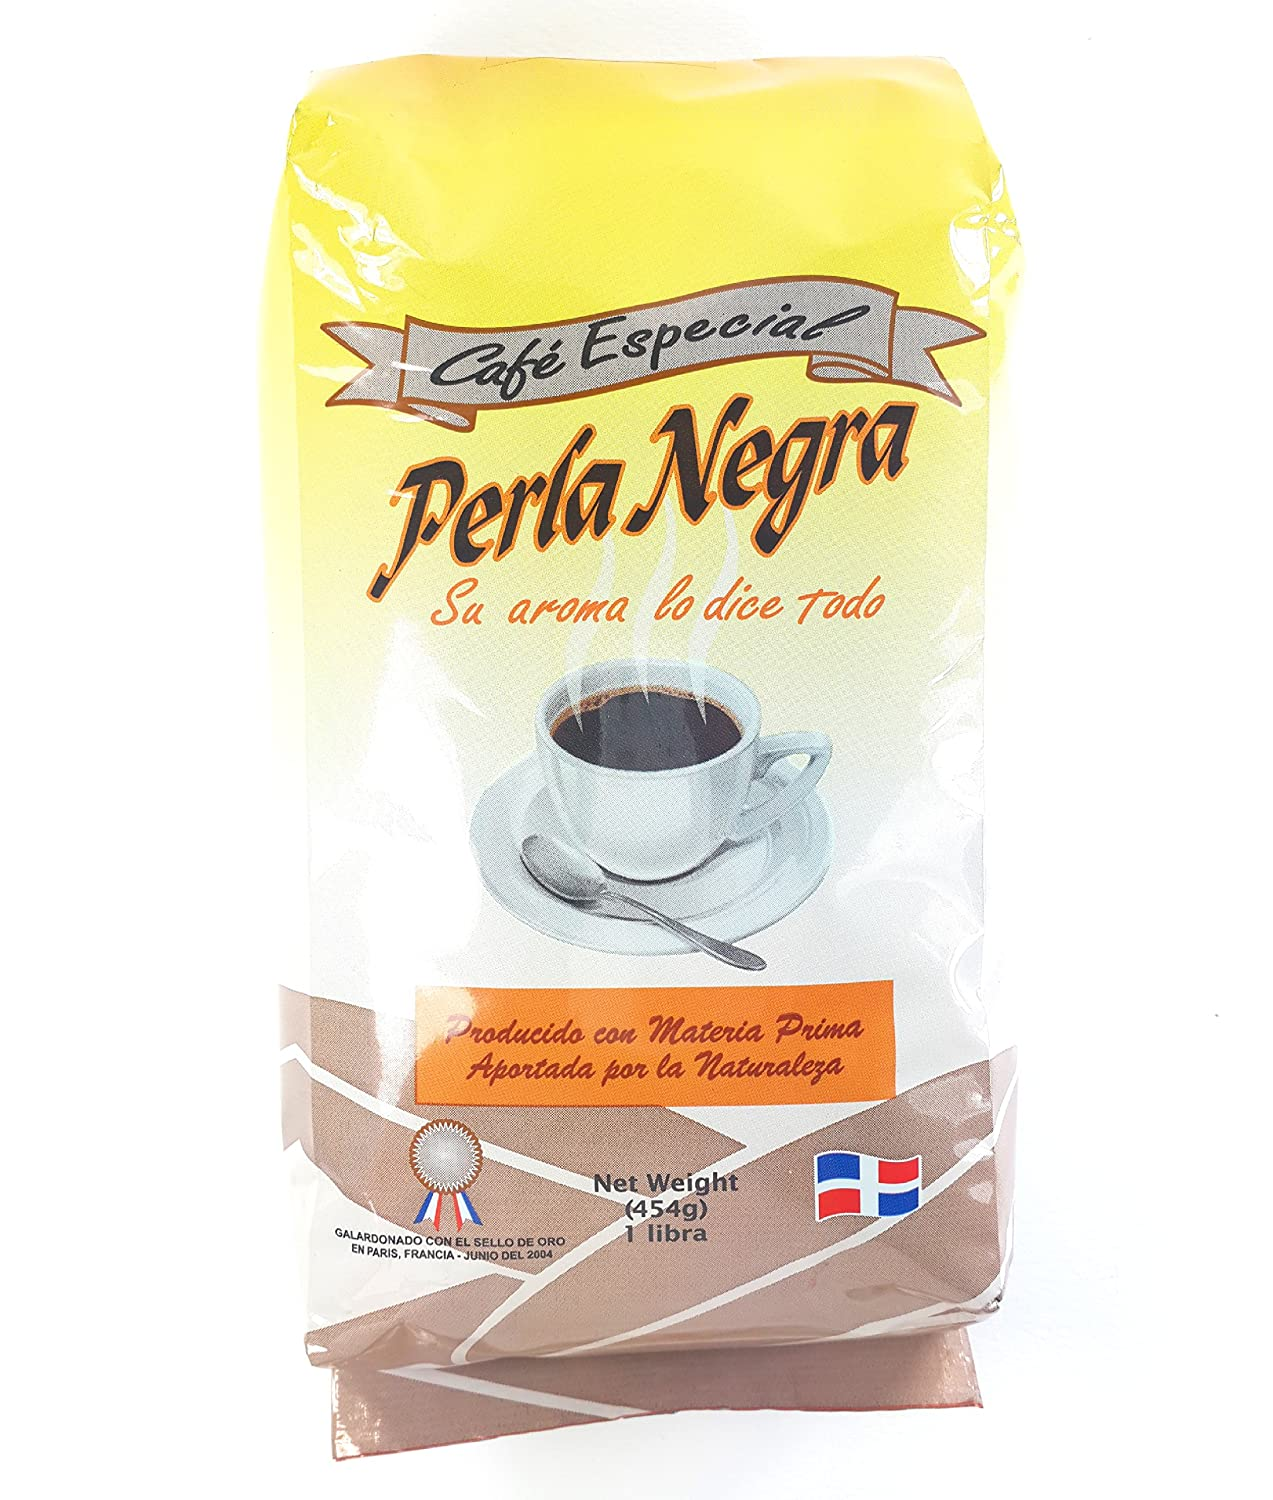 Amazon.com : New Perla Negra Ground Dominican Coffee 4 Bags / Pounds Pack : Grocery & Gourmet Food